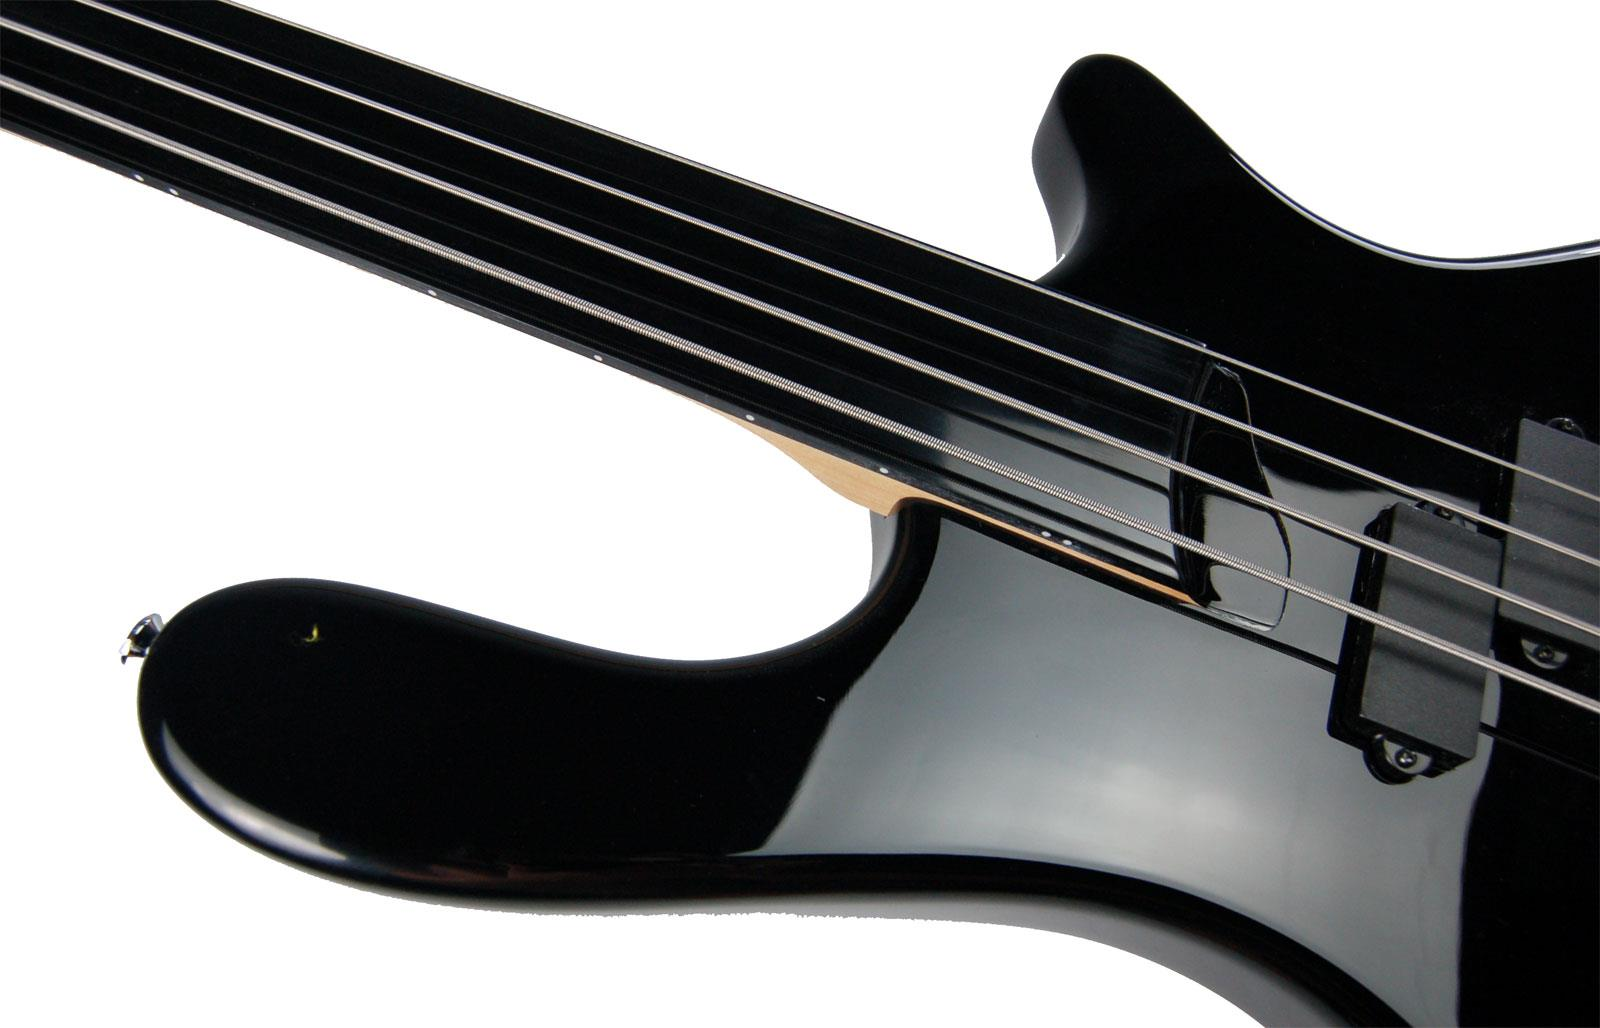 how to play i want you back on bass guitar